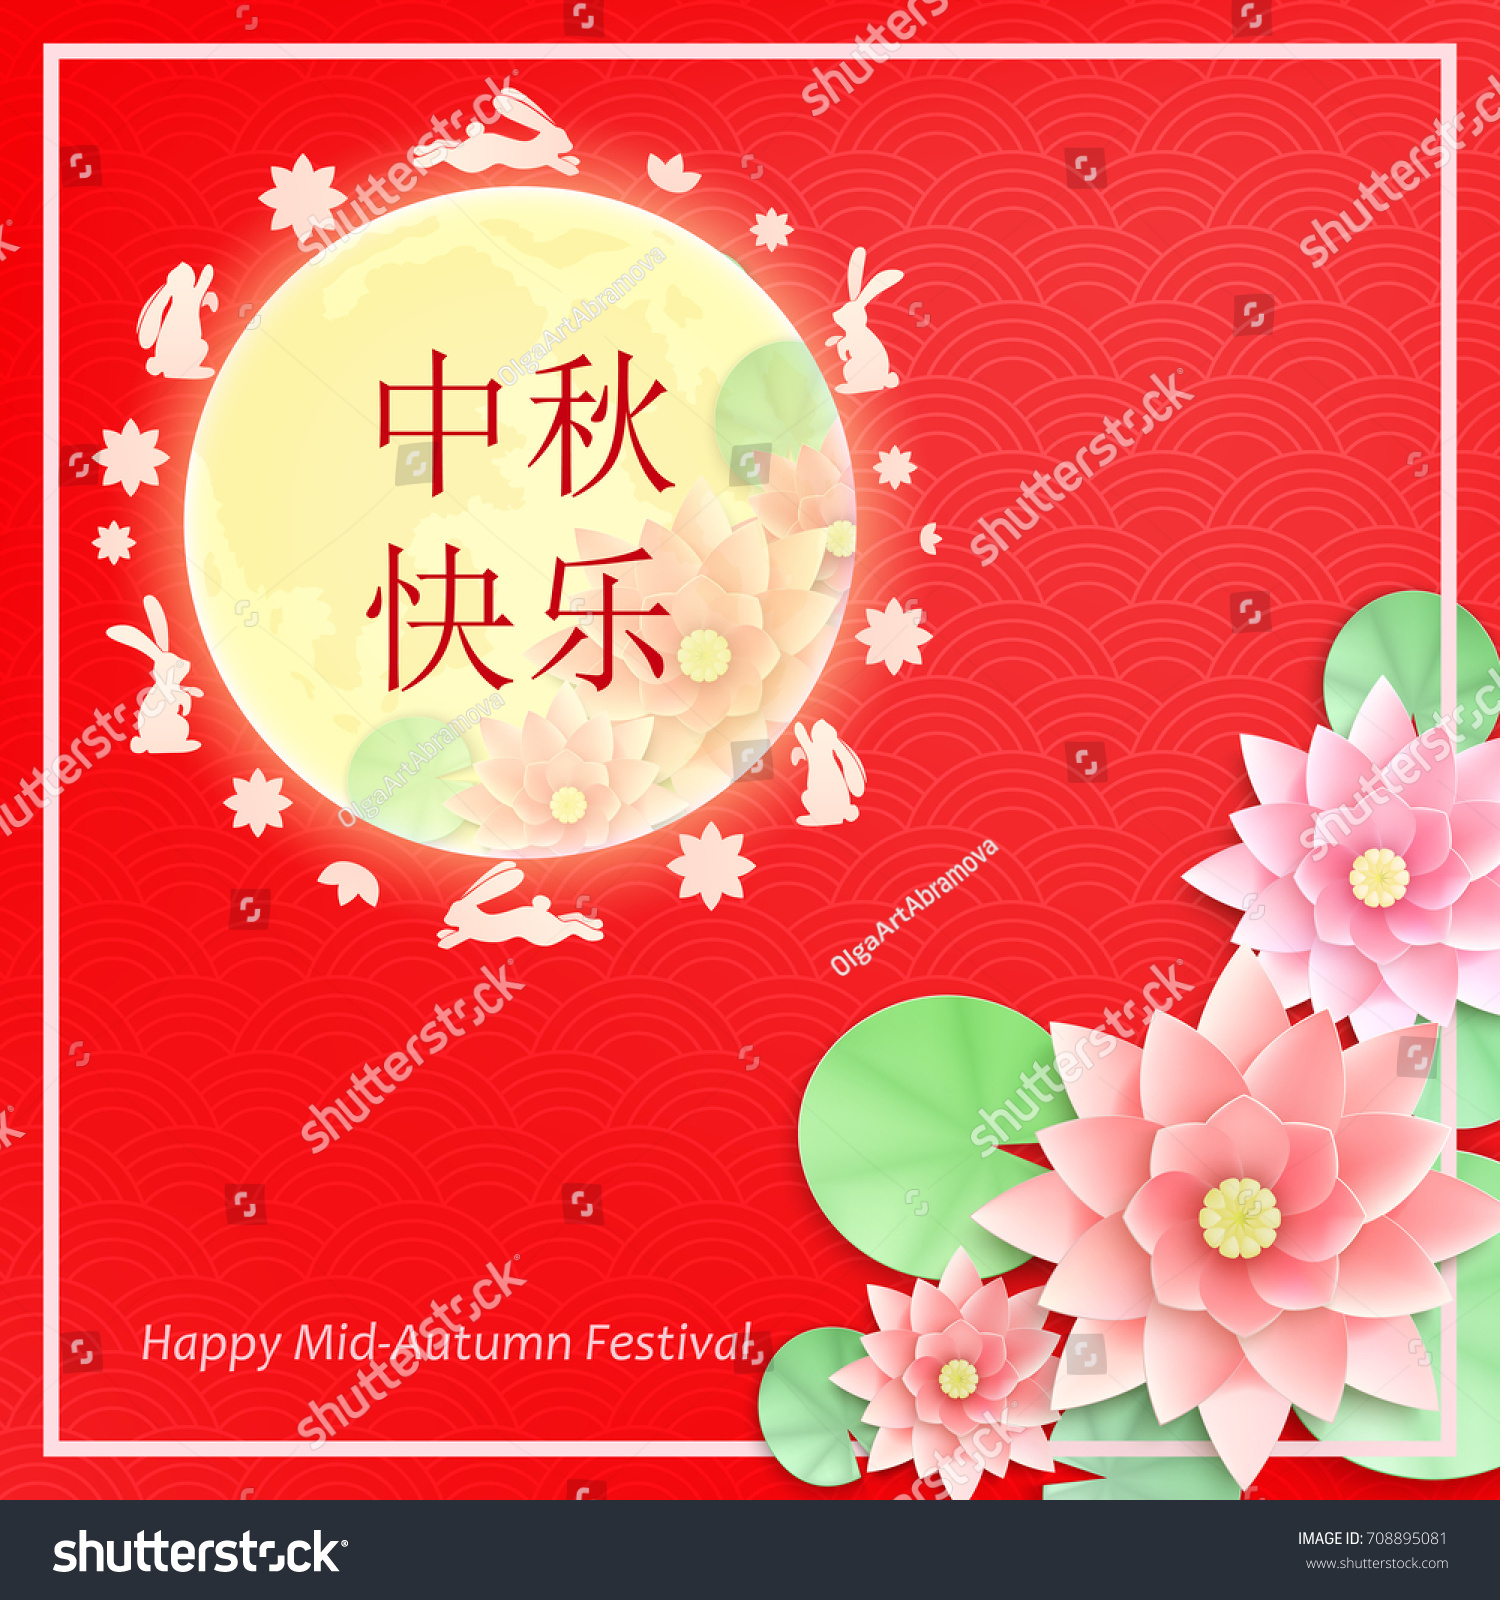 Chinese mid autumn festival greeting card stock vector 708895081 chinese mid autumn festival greeting card with moon rabbit and flowers chinese hieroglyphs are kristyandbryce Choice Image